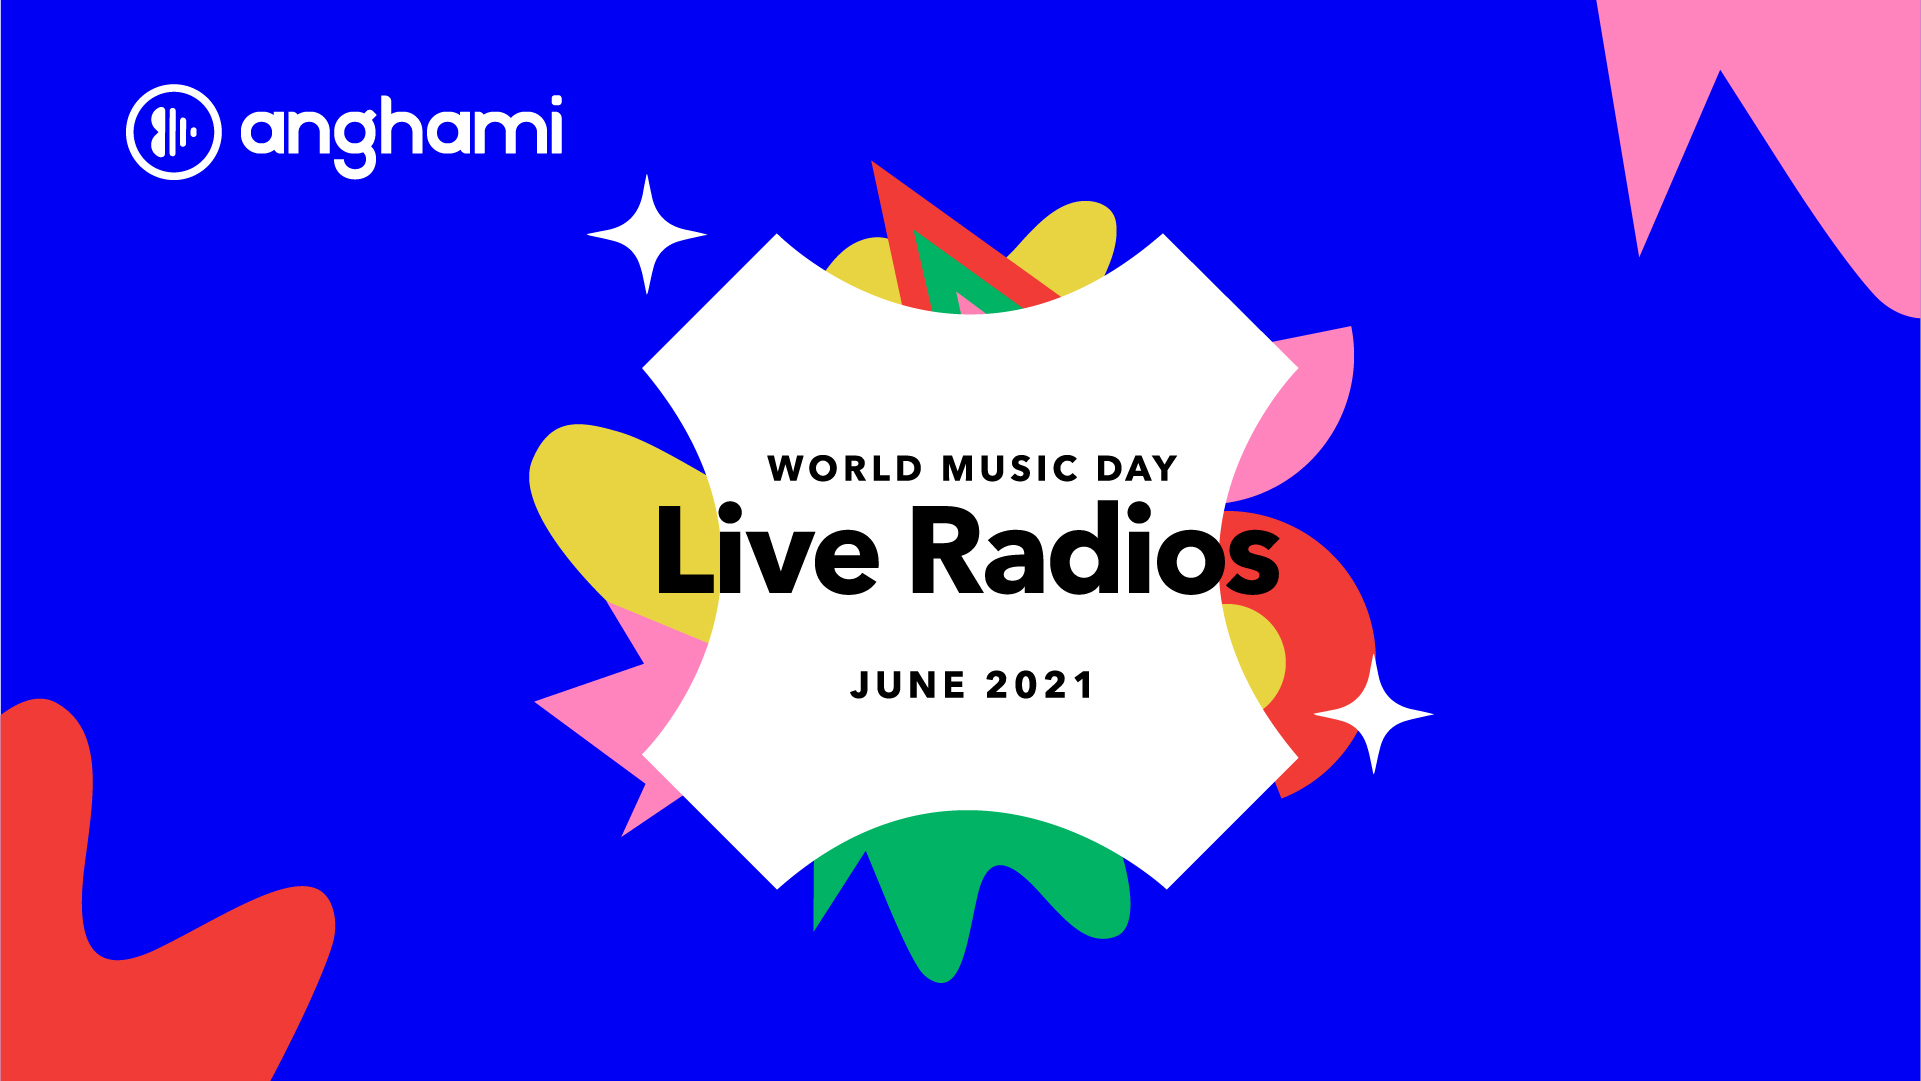 Anghami is celebrating Music Day over a full month in a unique way that brings the artist and the fan together in one virtual live room using the Live Radio feature.